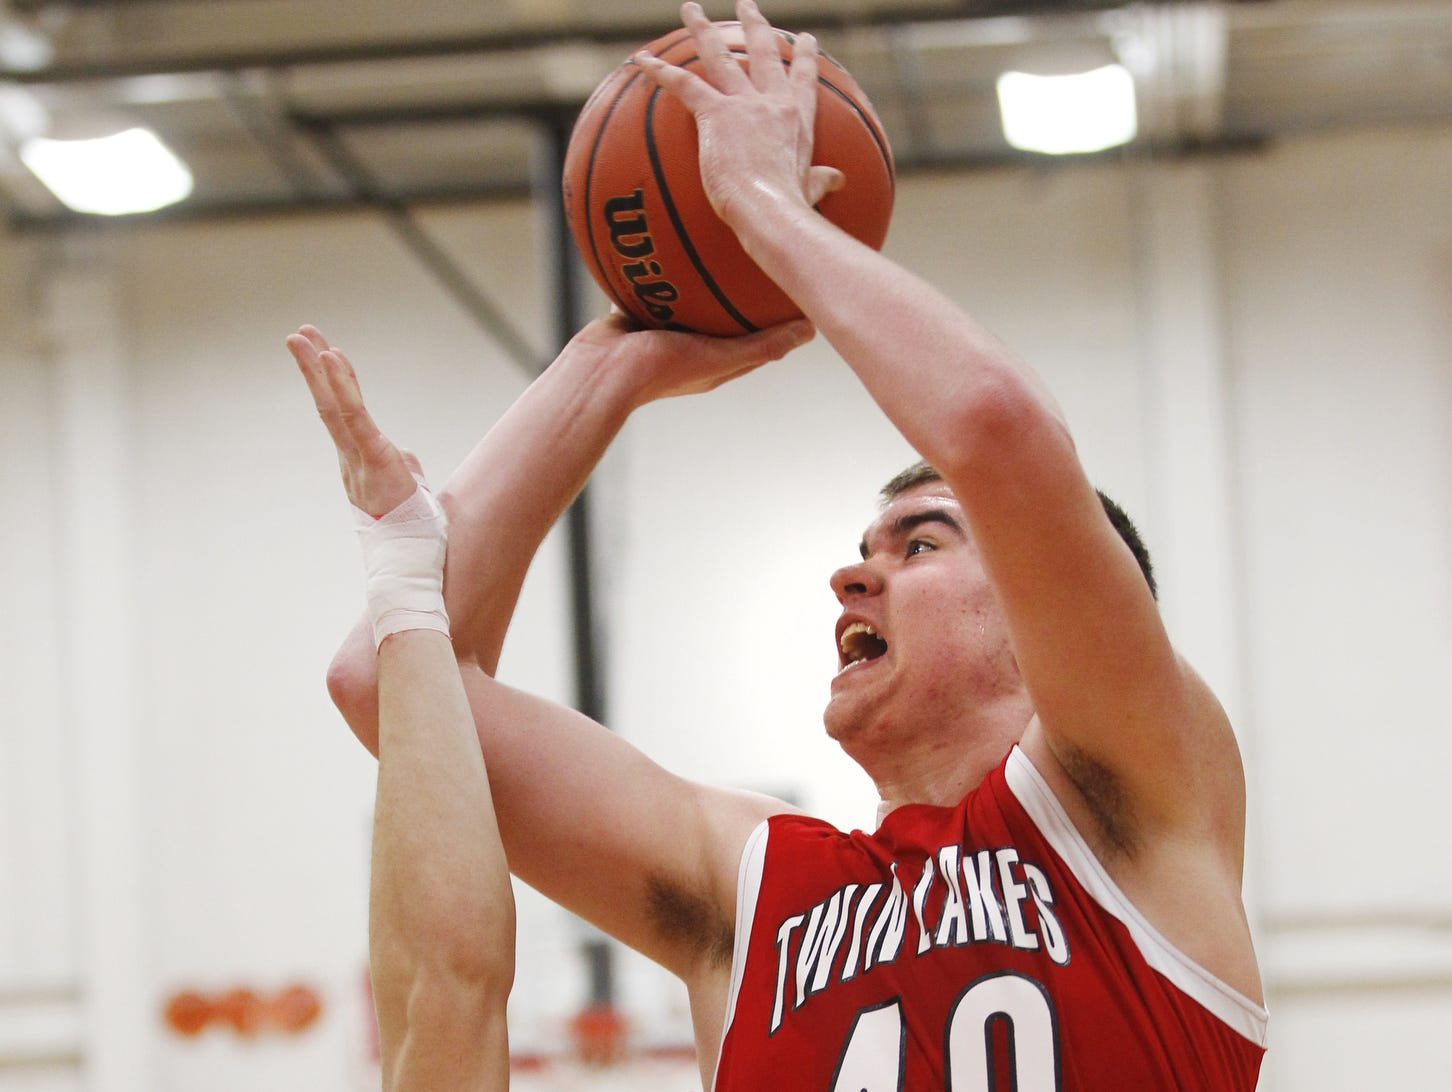 Dane Holmes of Twin Lakes scores over West Lafayette's Bradley Bittles.